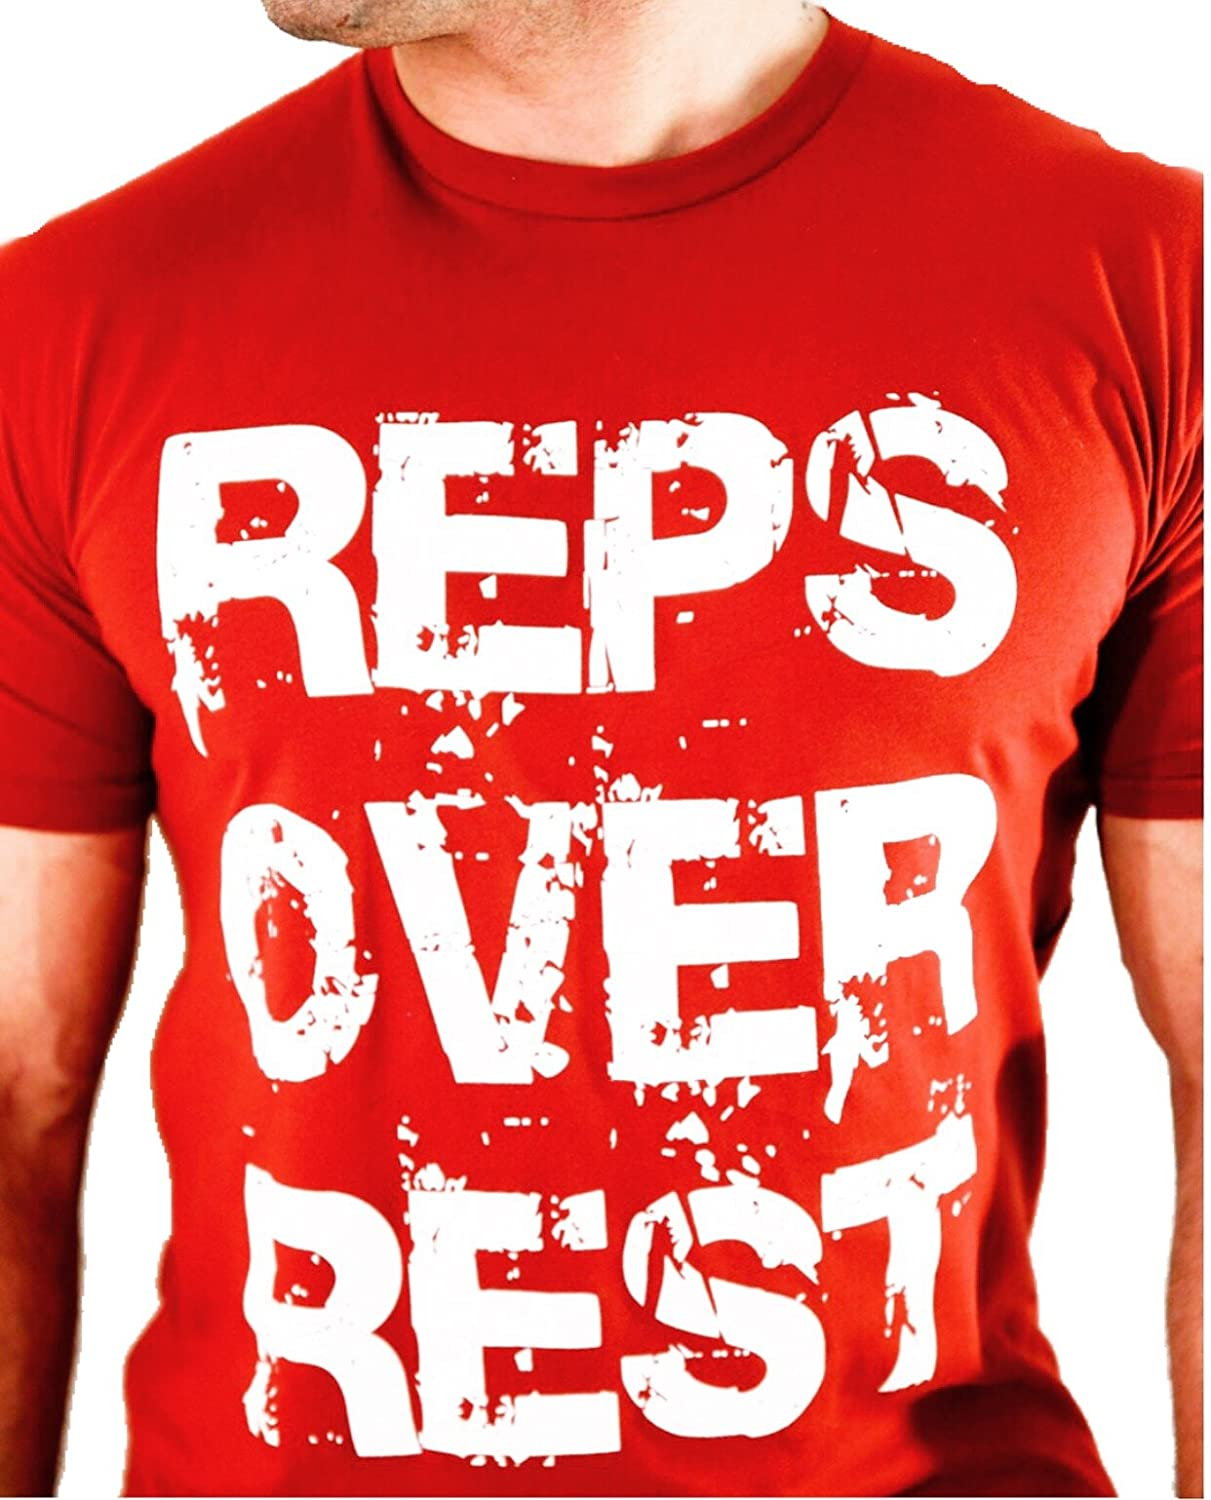 Cardinal Red XLarge Reps Over Rest 100% Cotton, Fitted Graphic Tee  Gym Leisure